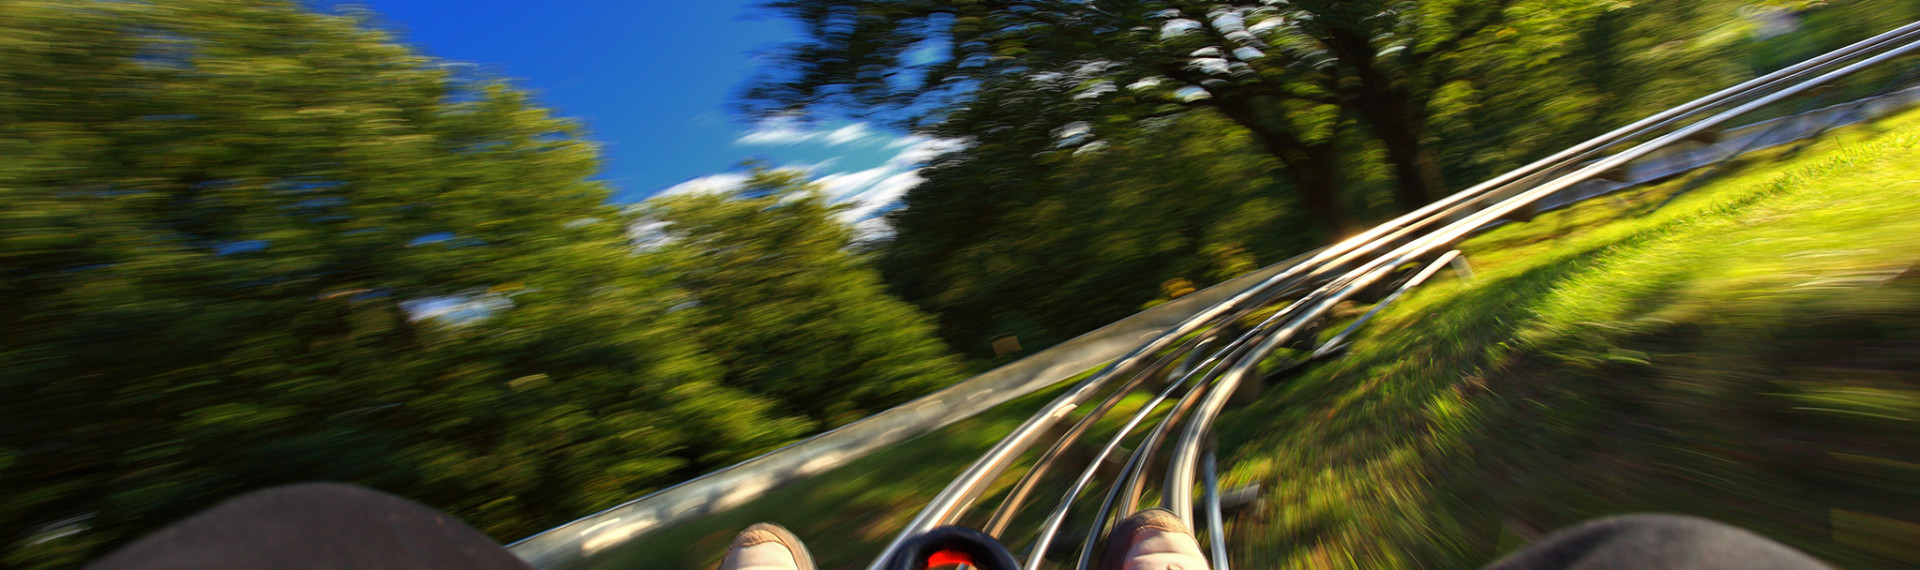 Prague Bobsleighing image